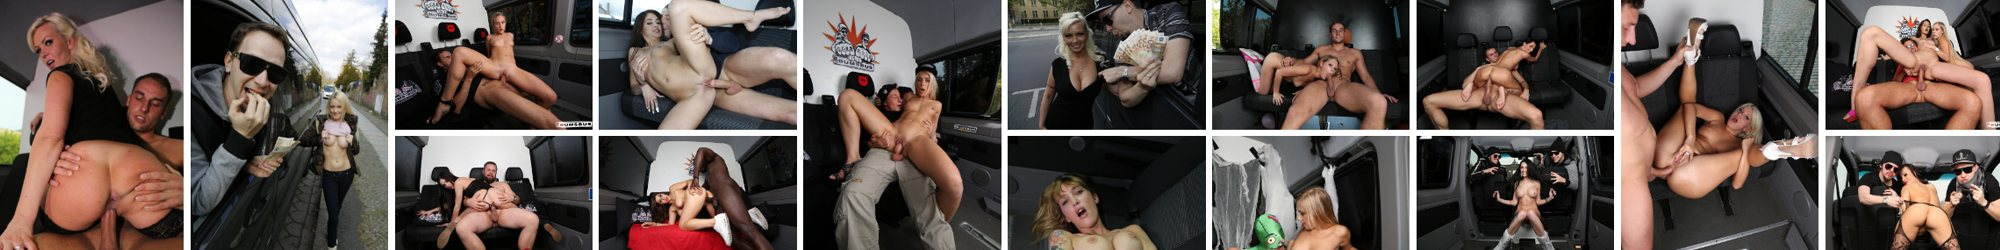 Fucked In Traffic